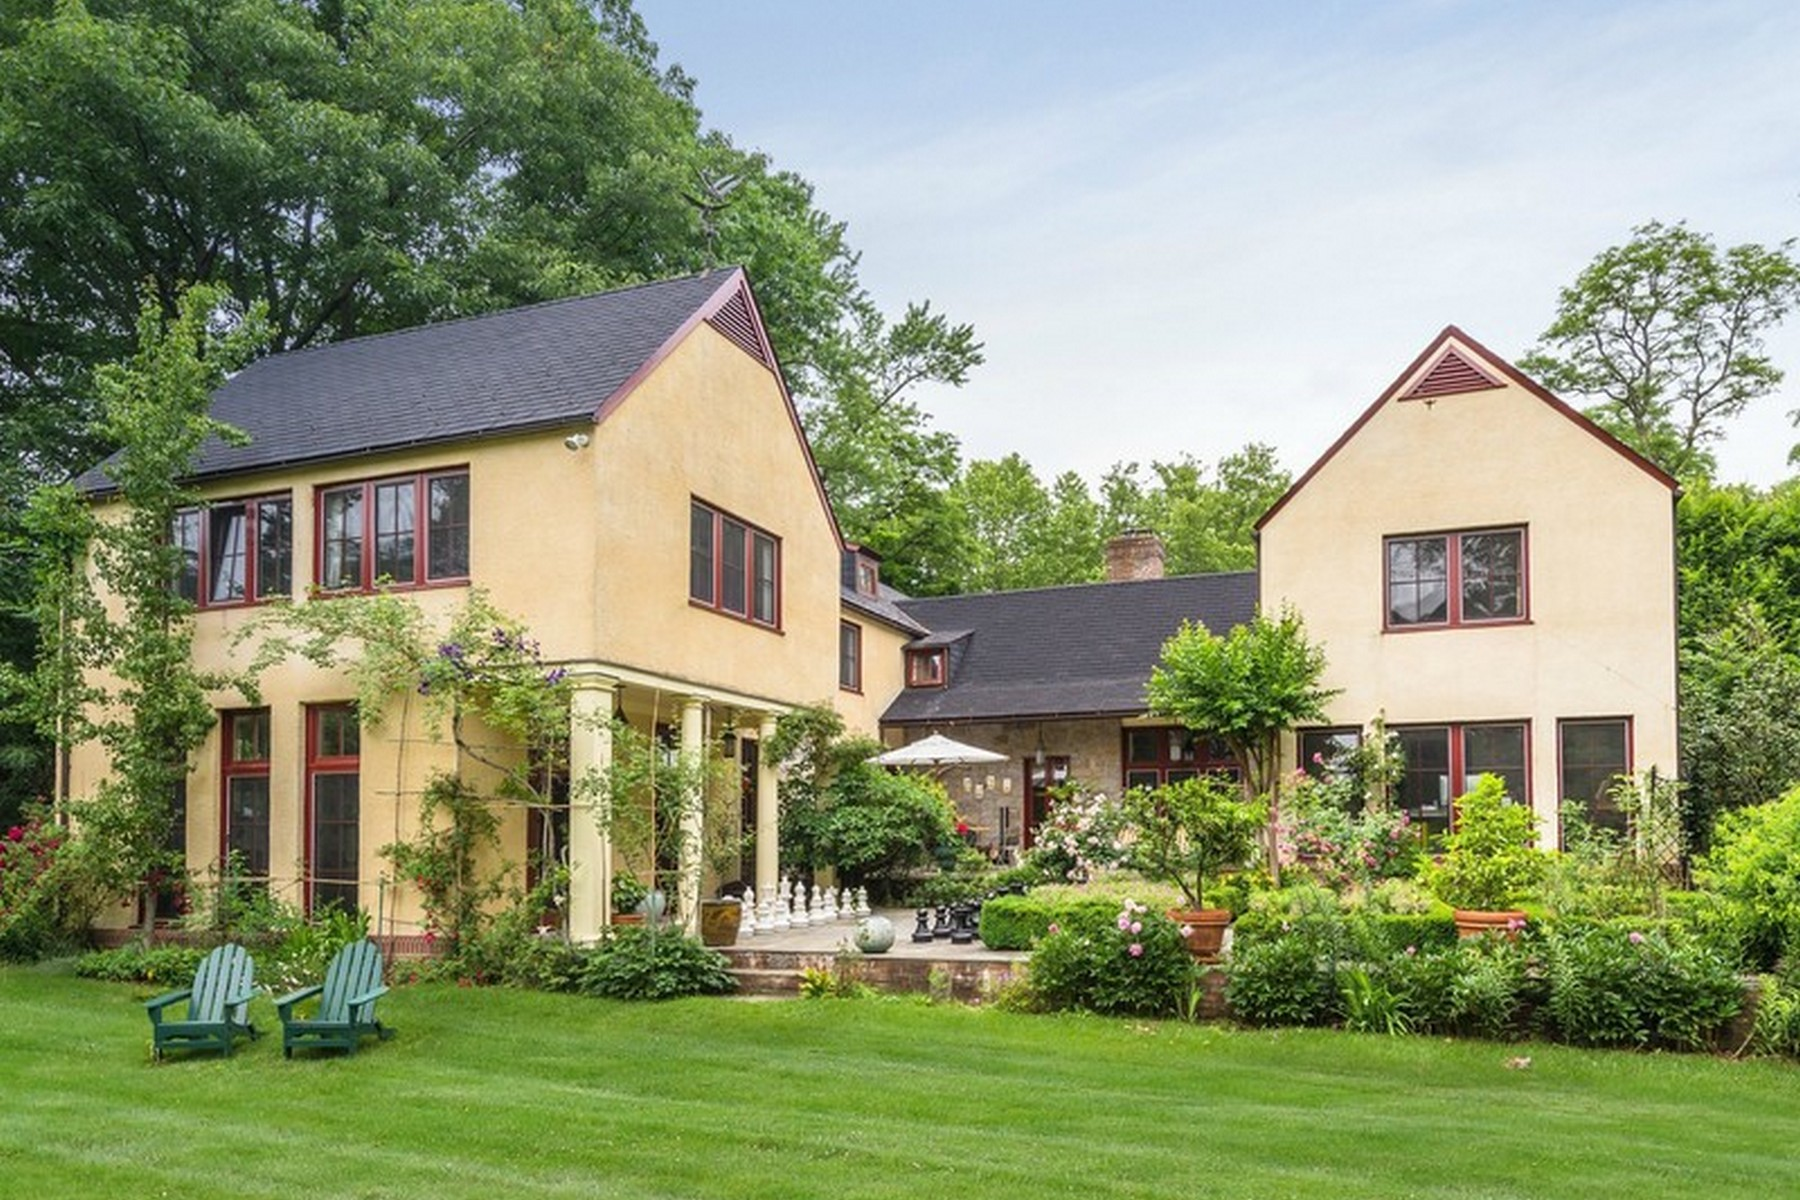 Single Family Home for Sale at Estate 250 Scudders Ln Roslyn Harbor, New York, 11576 United States